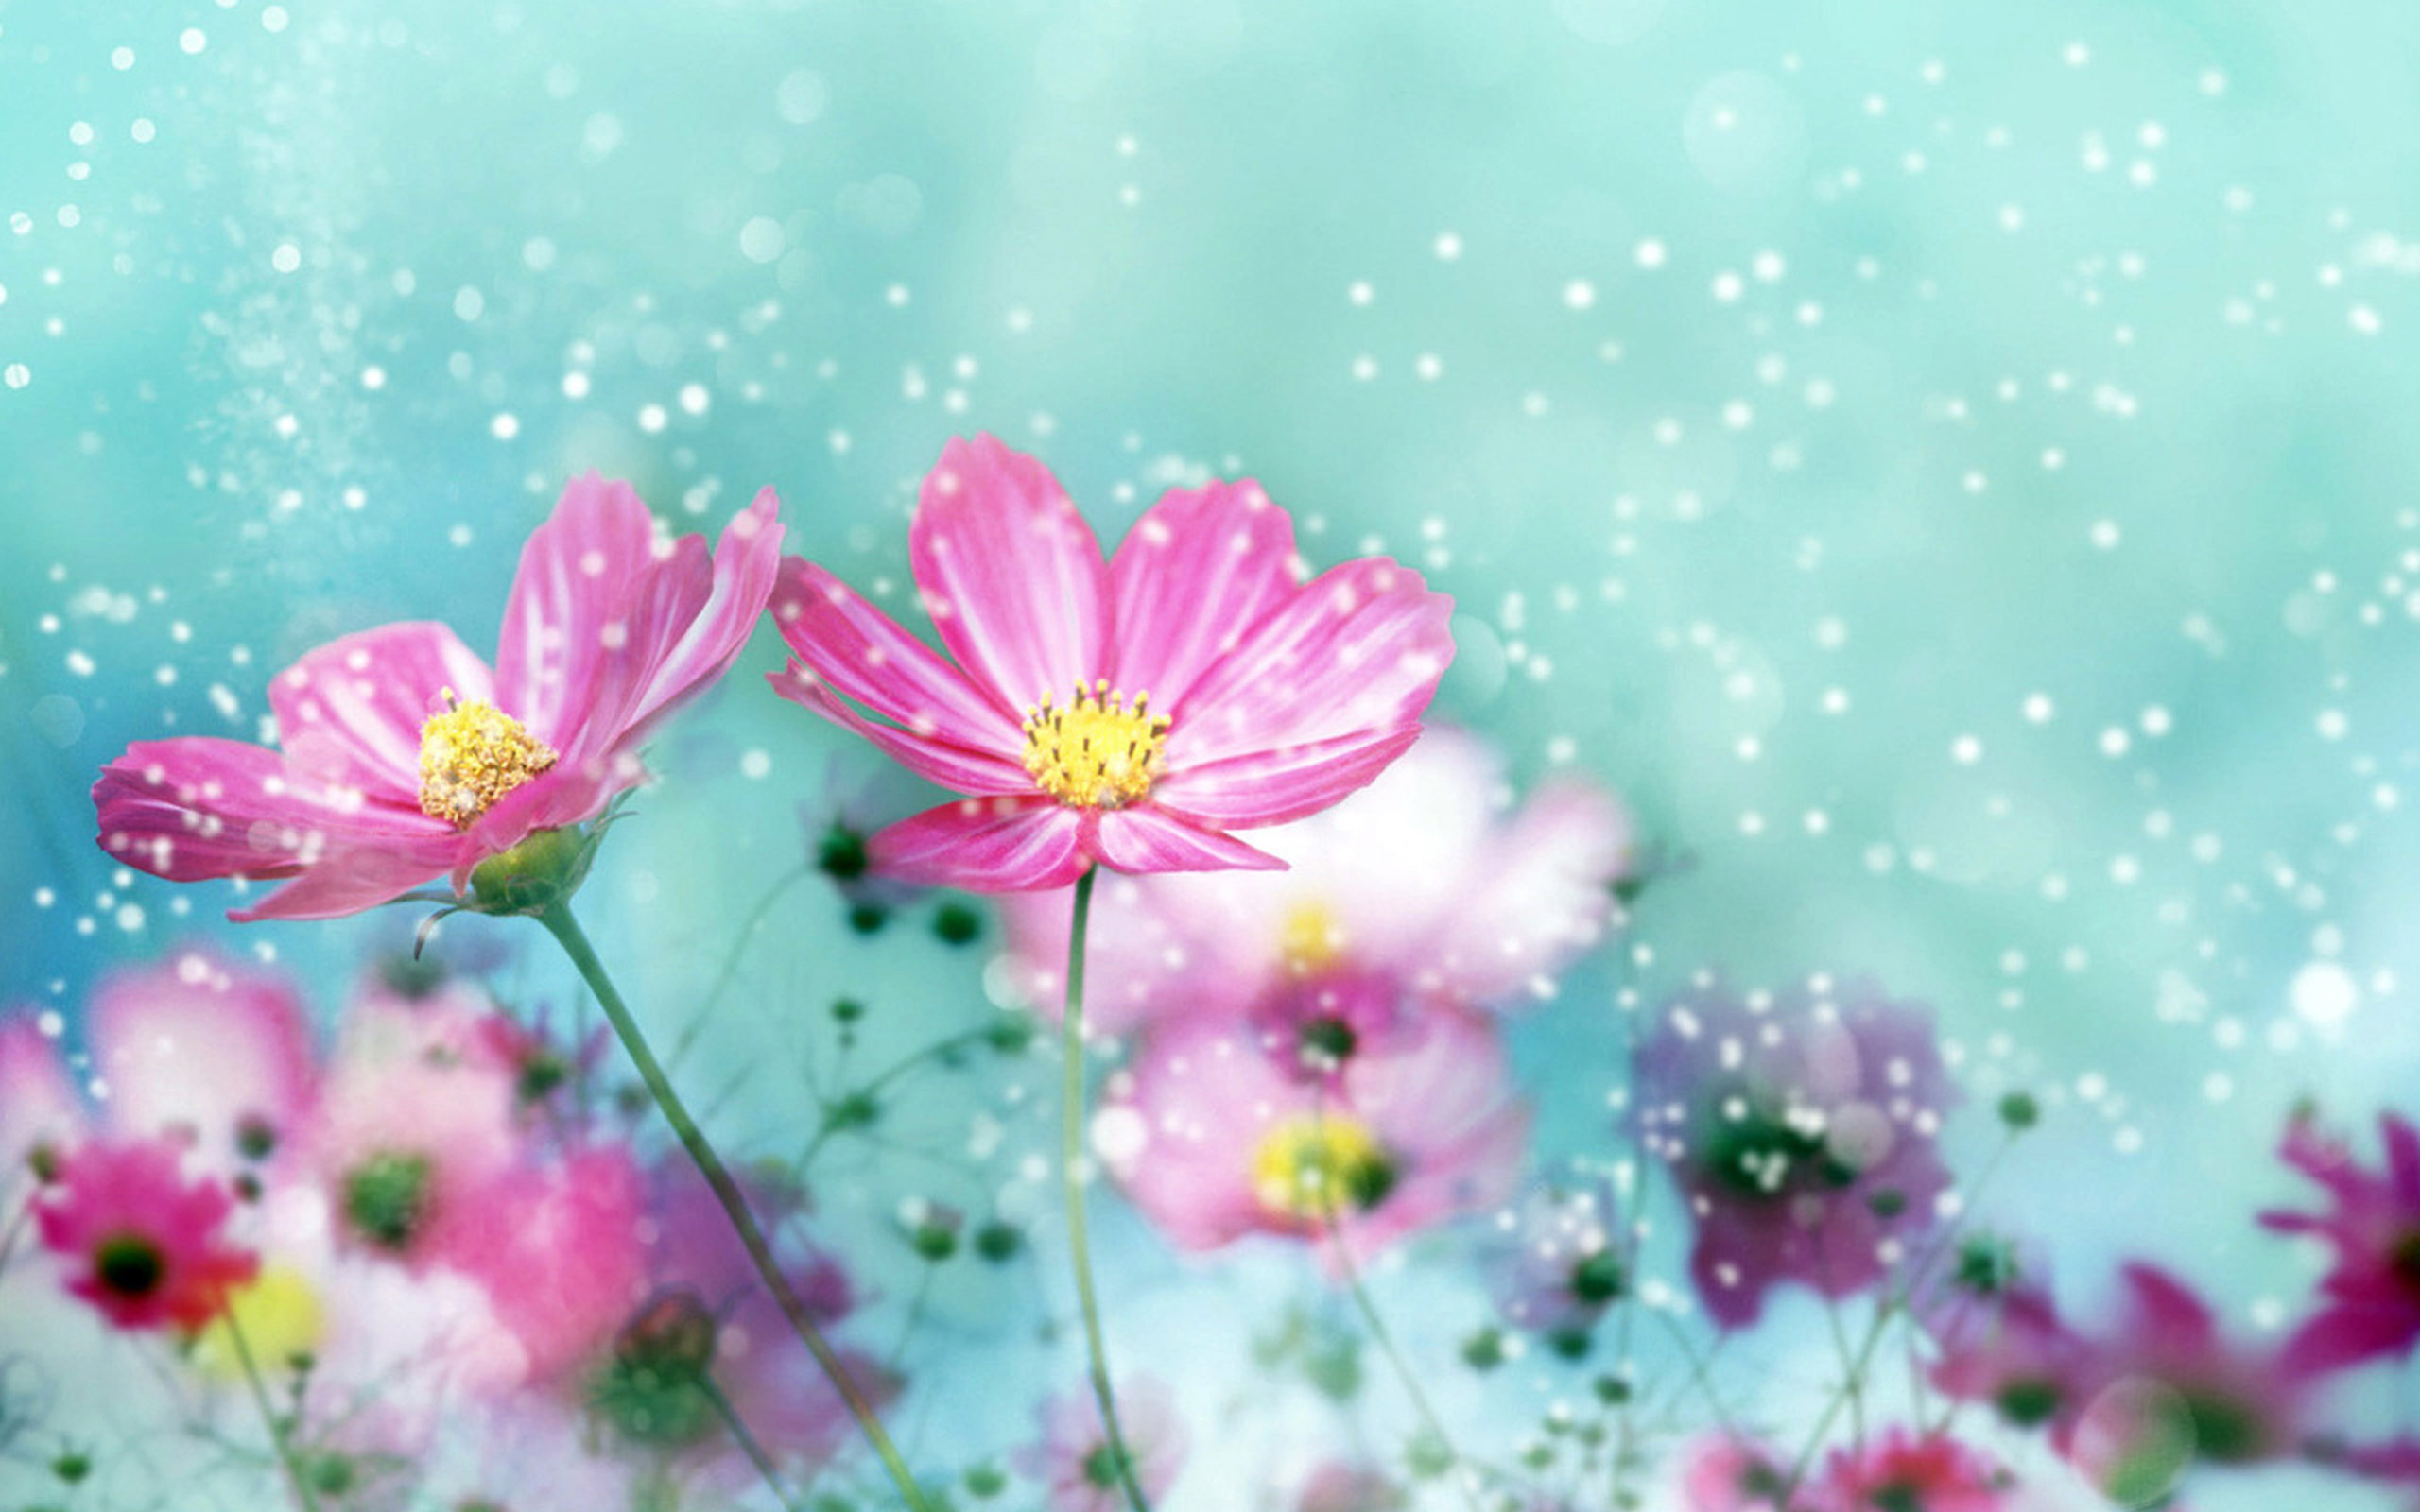 Beautiful Flowers Wallpaper HD Desktop 4513 Wallpaper 2560x1600